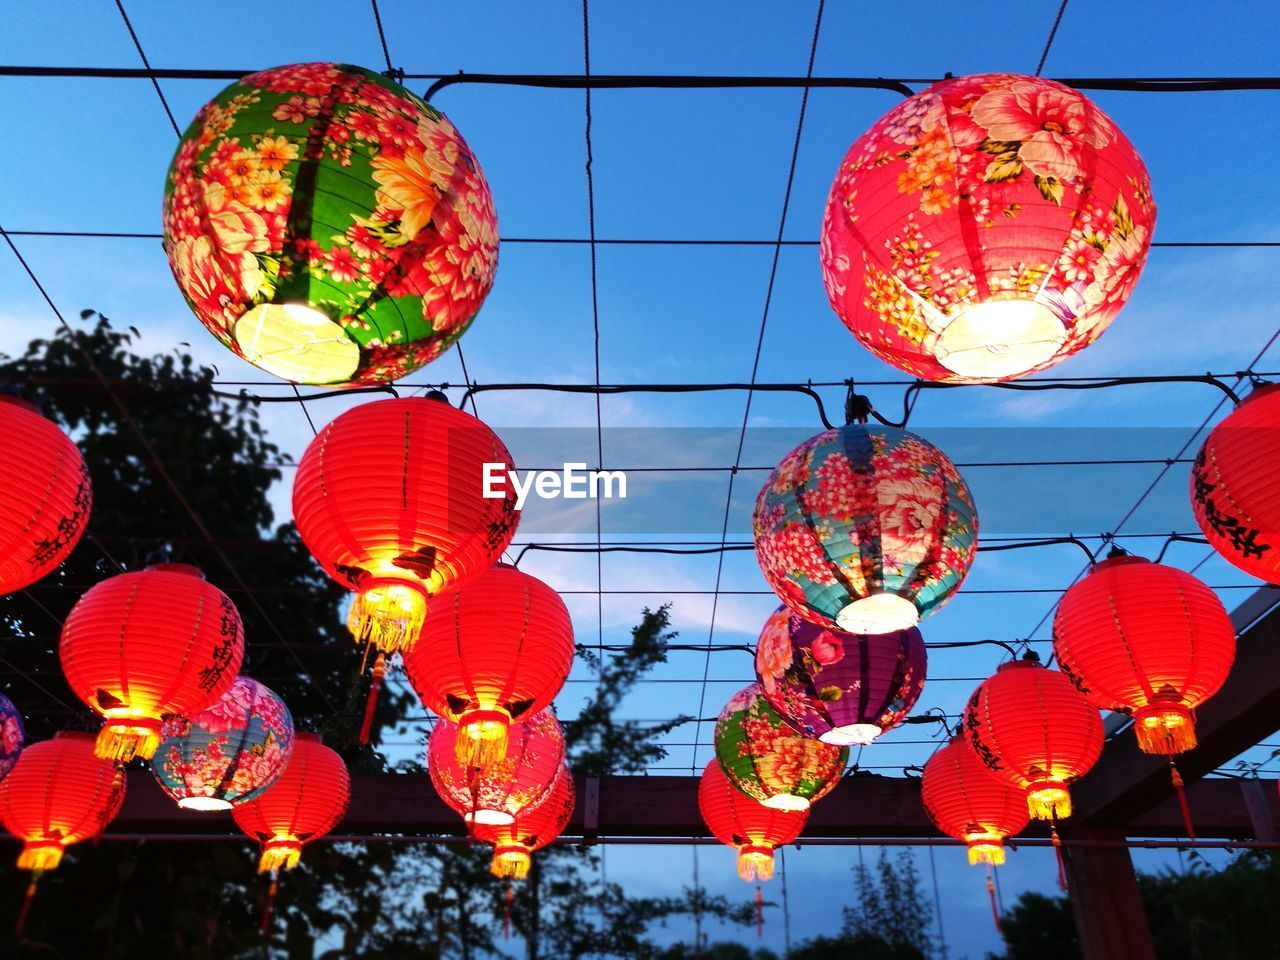 lighting equipment, lantern, low angle view, chinese lantern, hanging, decoration, illuminated, celebration, red, architecture, no people, sky, building exterior, built structure, traditional festival, festival, in a row, chinese lantern festival, chinese new year, electricity, outdoors, paper lantern